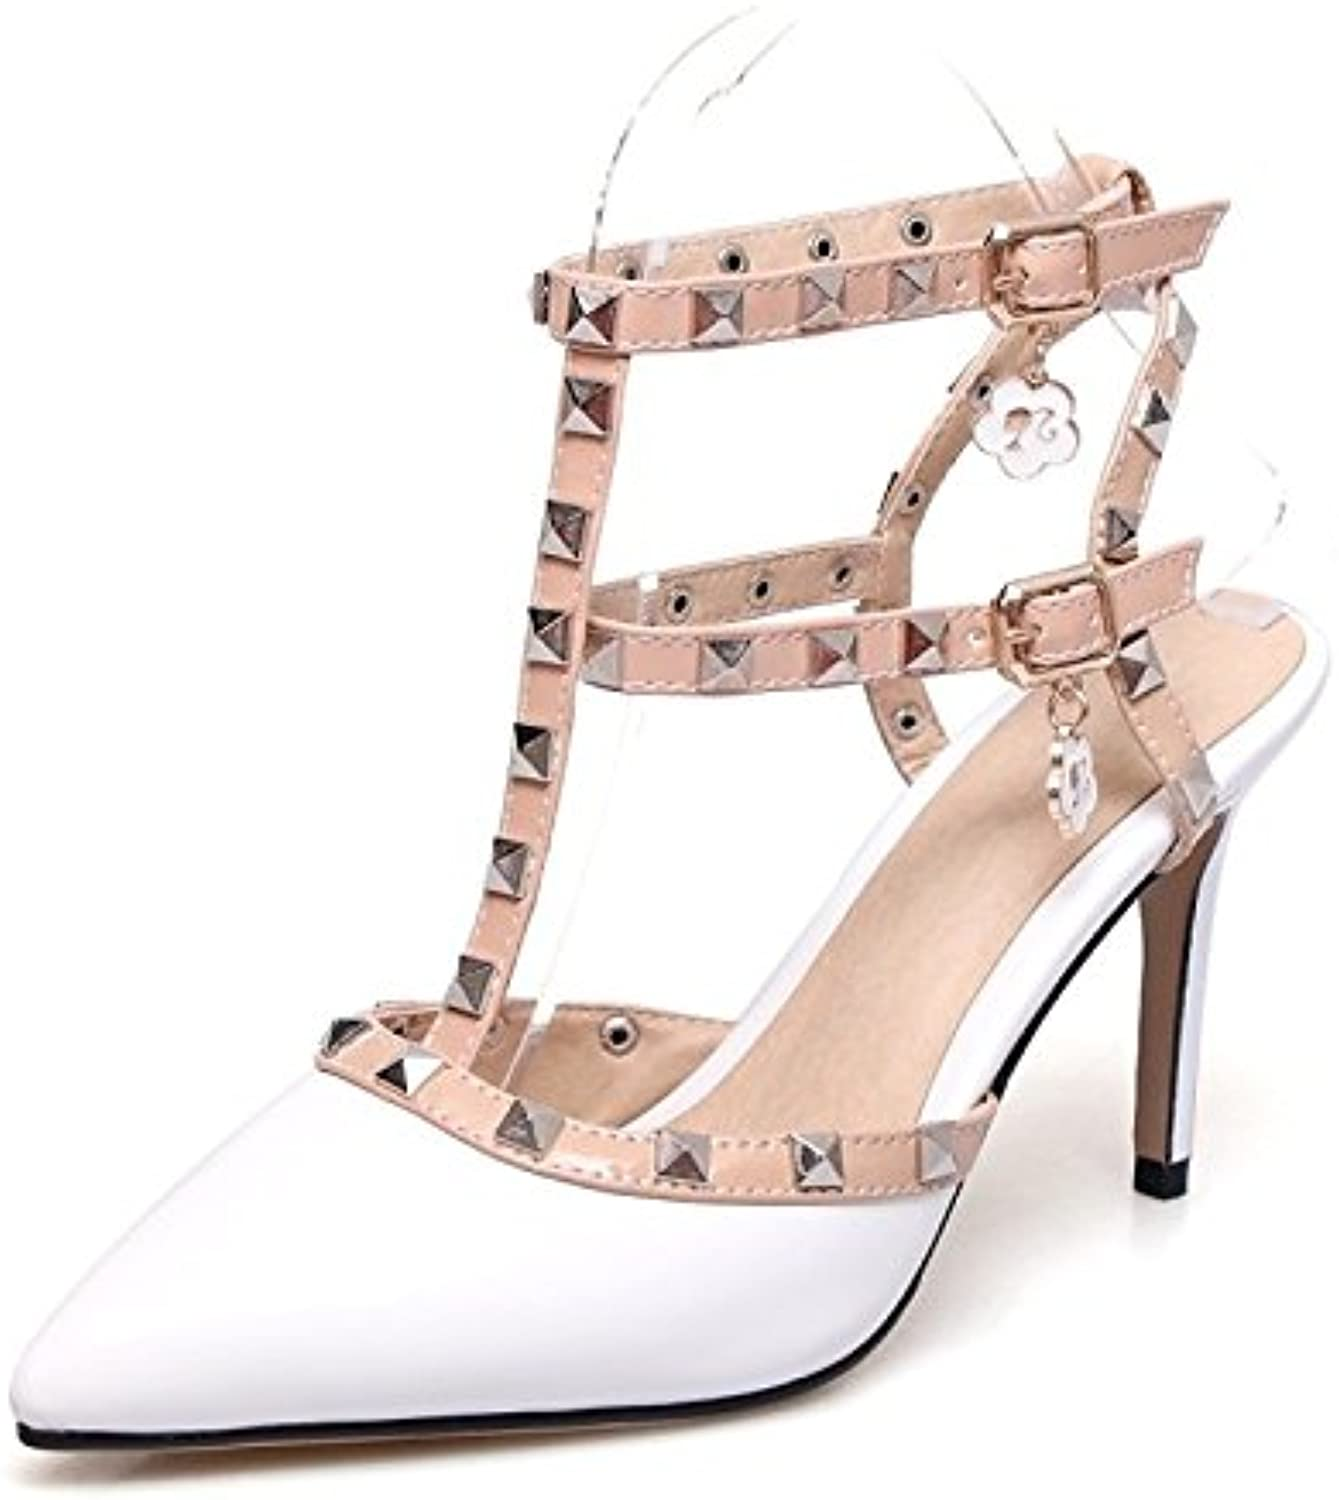 Women's shoes Leatherette Summer Comfort Sandals Stiletto Heel Pointed Toe Rivet Buckle for Wedding Party,Evening White Black